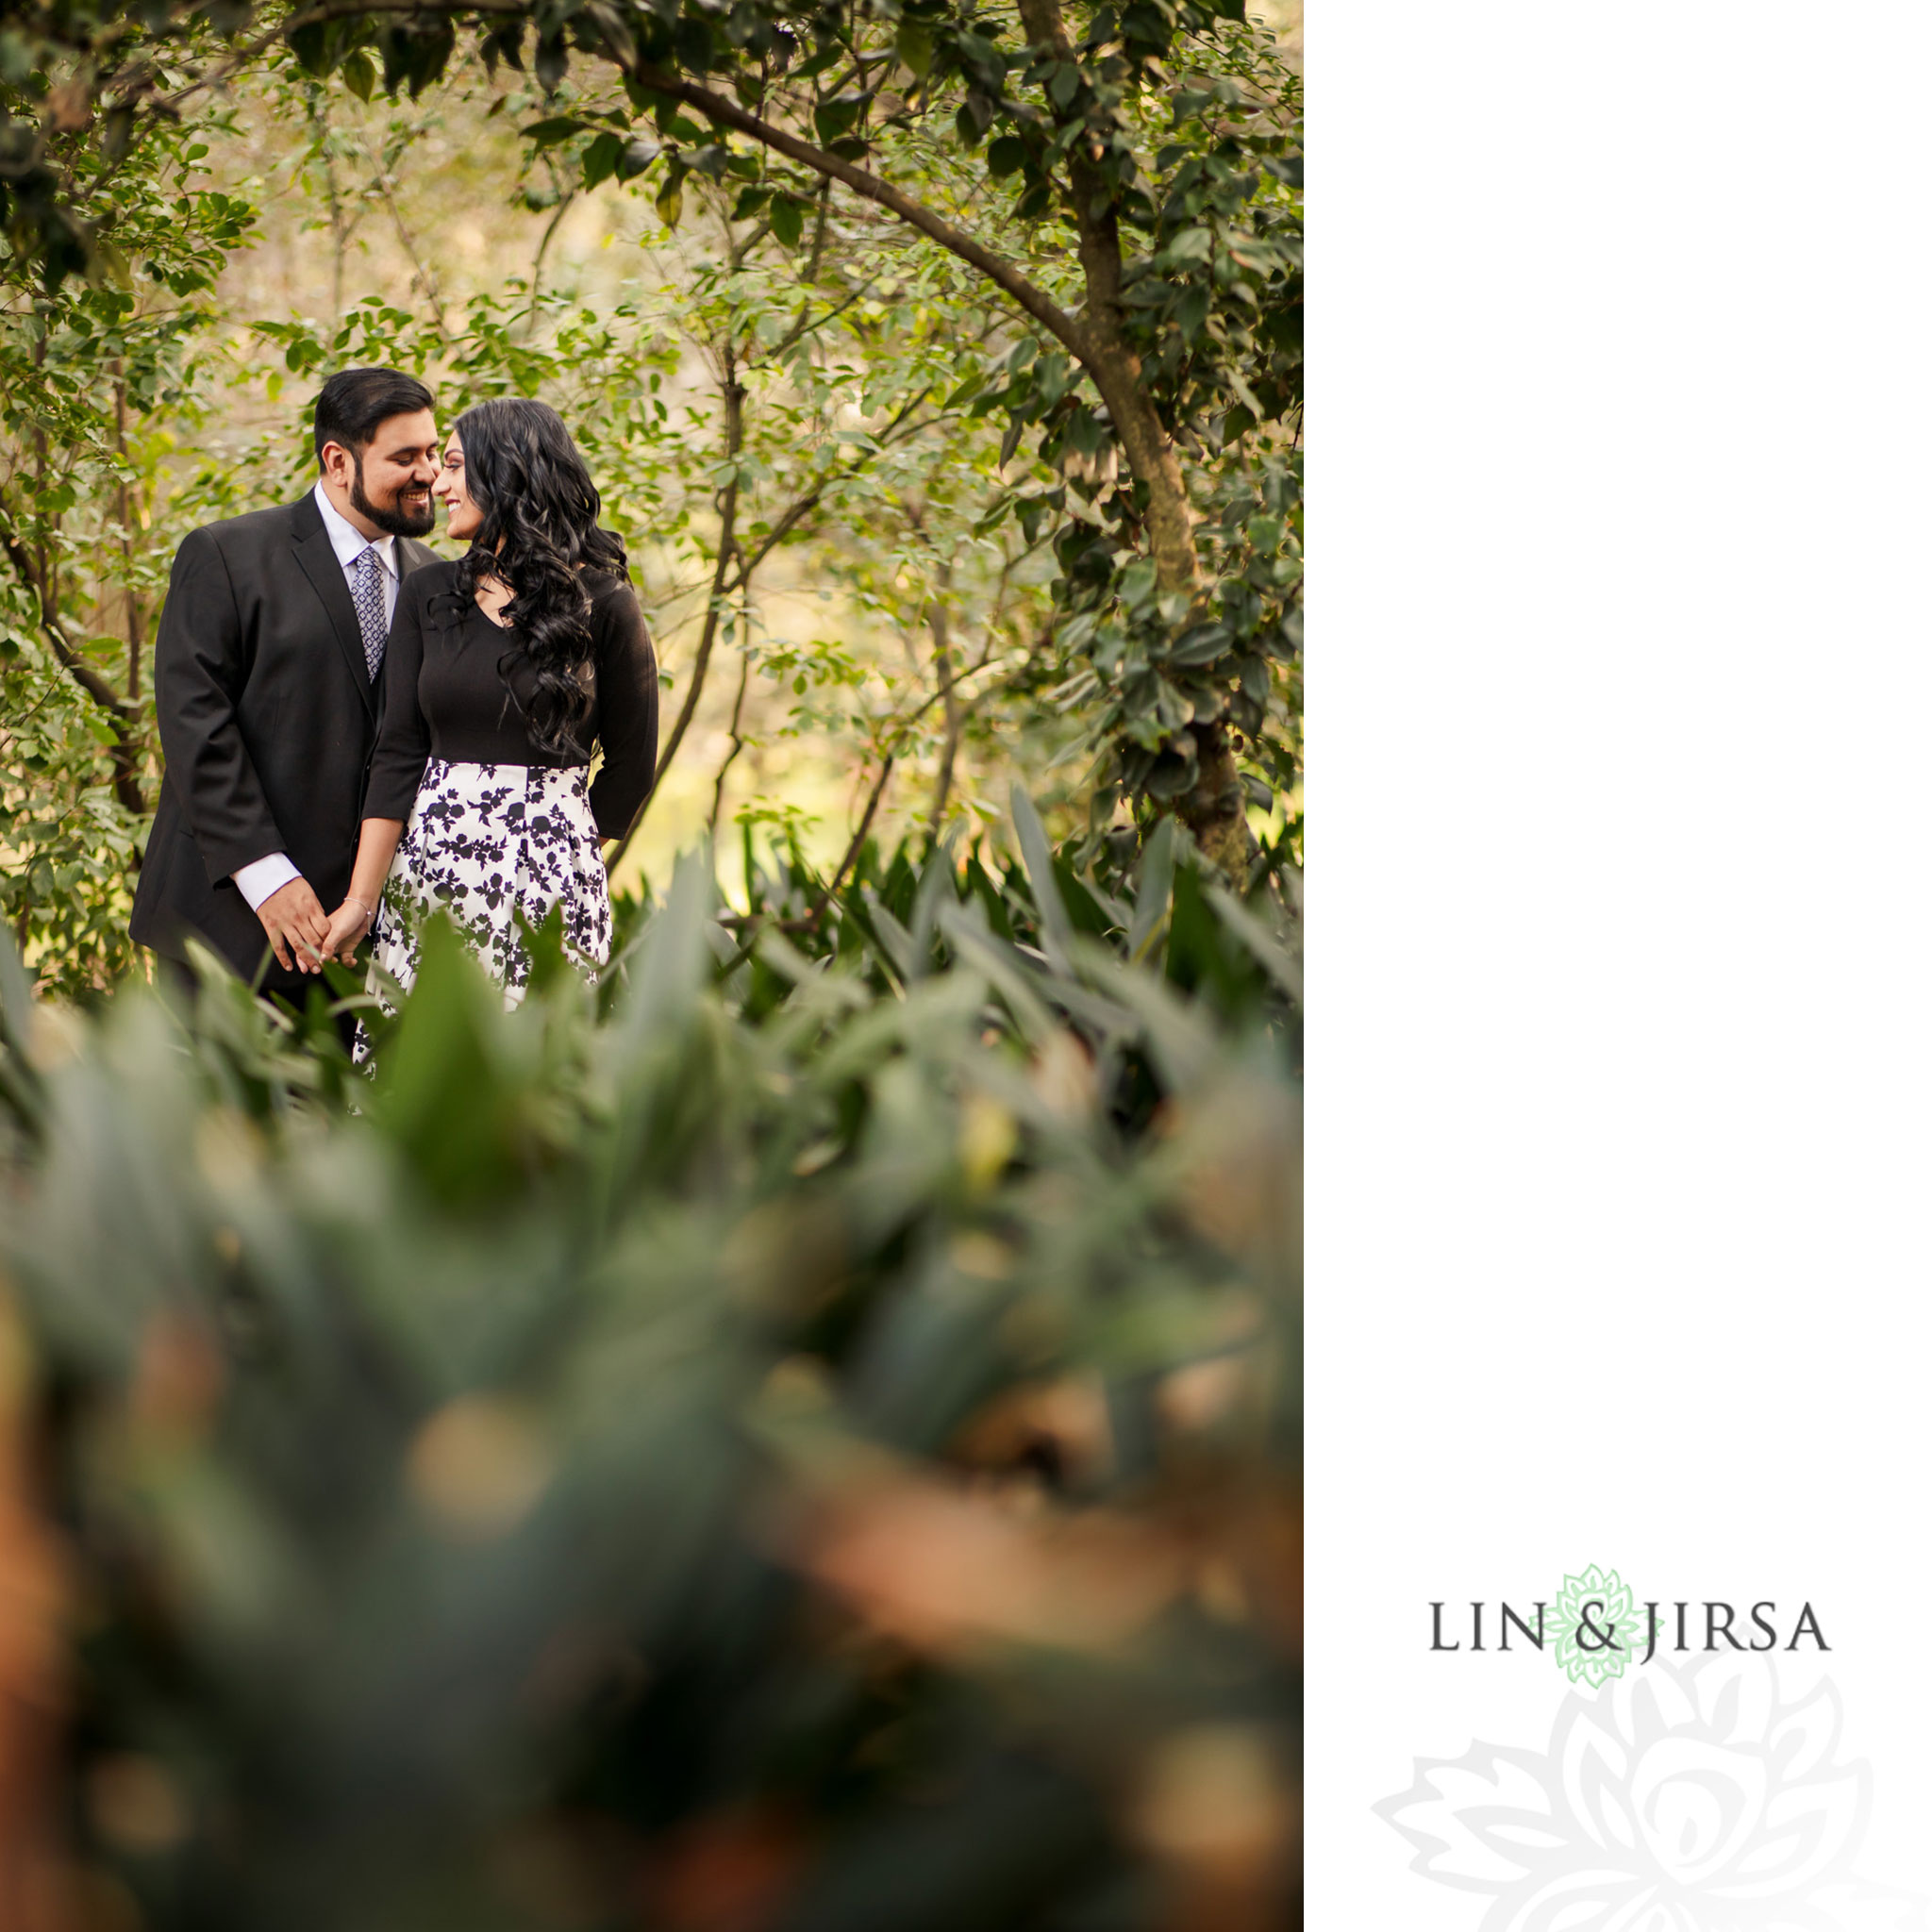 007 descanso gardens los angeles county engagement session